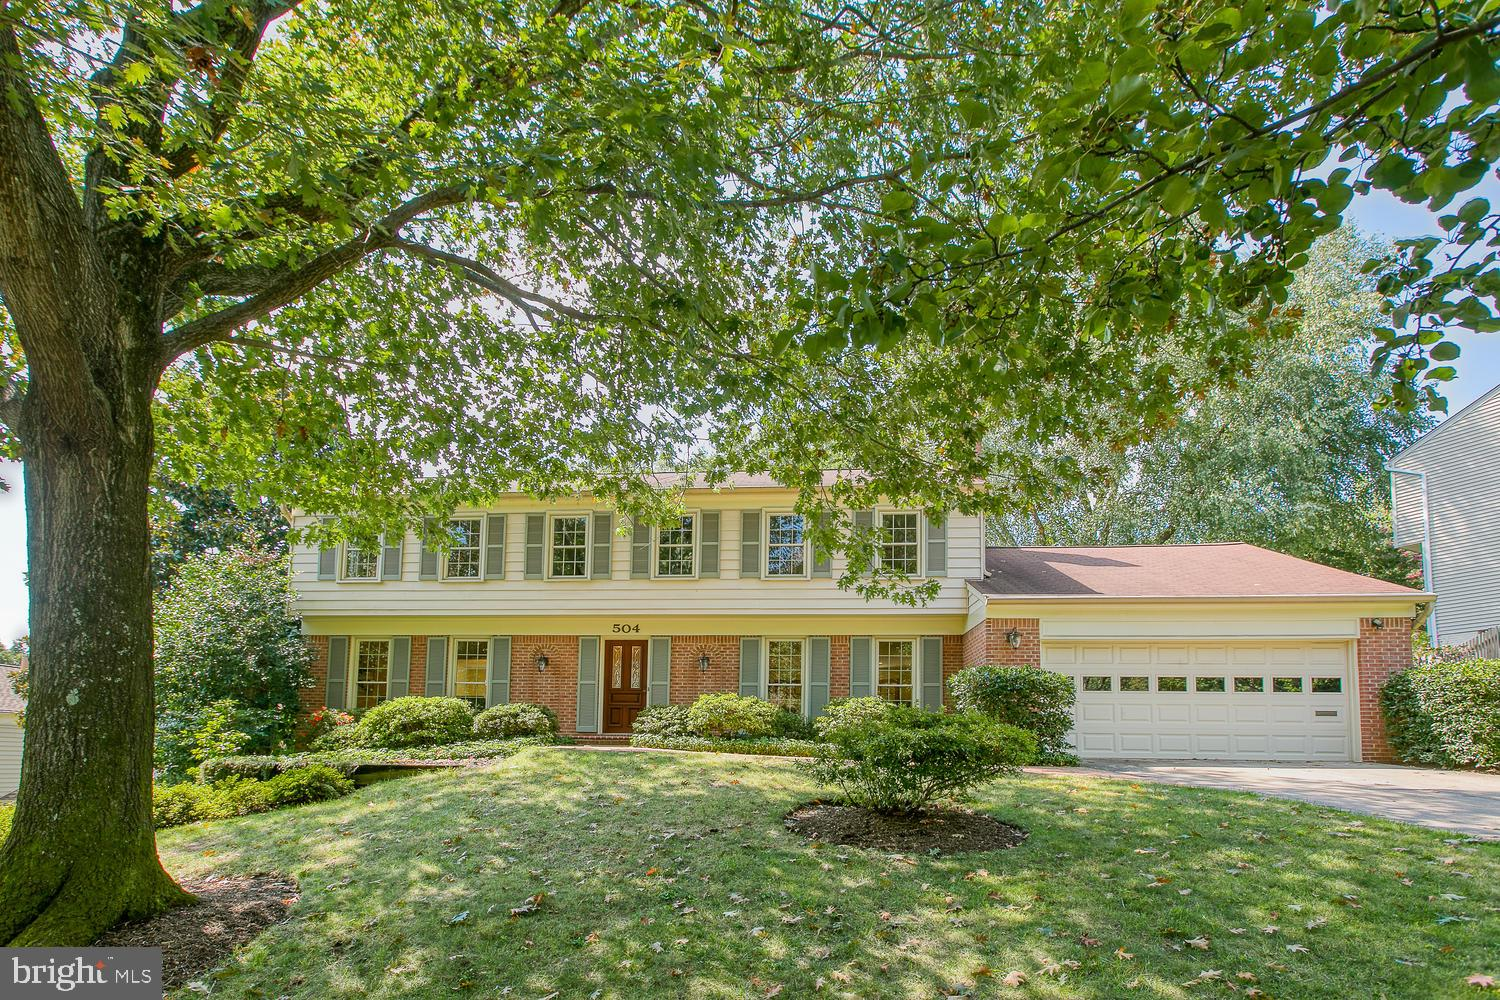 AMAZING PRICE FOR Seminary Ridge! 4BR/2.5BA classic center hall colonial with spectacular private backyard! Meticulously maintained and ready to move in! Updated eat-in kitchen with granite, upgraded solid wood cabinets and stainless steel appliances! Main level layout is perfect for entertaining with formal living and dining rooms, family room with gas fireplace, and fabulous sunroom with skylights, vaulted ceiling, huge windows and French doors opening to deck, patio, and picturesque backyard! Pristine hardwoods on main/upper levels; updated double-pane windows throughout! 4 large bedrooms on upper level include expansive en suite master with gorgeous updated bath and walk-in closet!  Spacious lower-level with rec room and two bonus rooms -- potential for exercise room or home office!  Private backyard oasis boasts gorgeous mature landscaping and automatic lawn sprinkler system! 2-car garage opens to main-level laundry/mud room! Located directly across from Fort Williams Park -- a natural conservation area.  Alexandria's sought-after Seminary Ridge neighborhood offers easy access to major commuter routes, Crystal City, National Landing, Amazon HQ2, Pentagon, Reagan National Airport and Washington DC! Metro, Old Town Alexandria and Del Ray shops and restaurants, and multiple highly-rated schools are just minutes away! This home is a true sanctuary in the heart of the City of Alexandria!